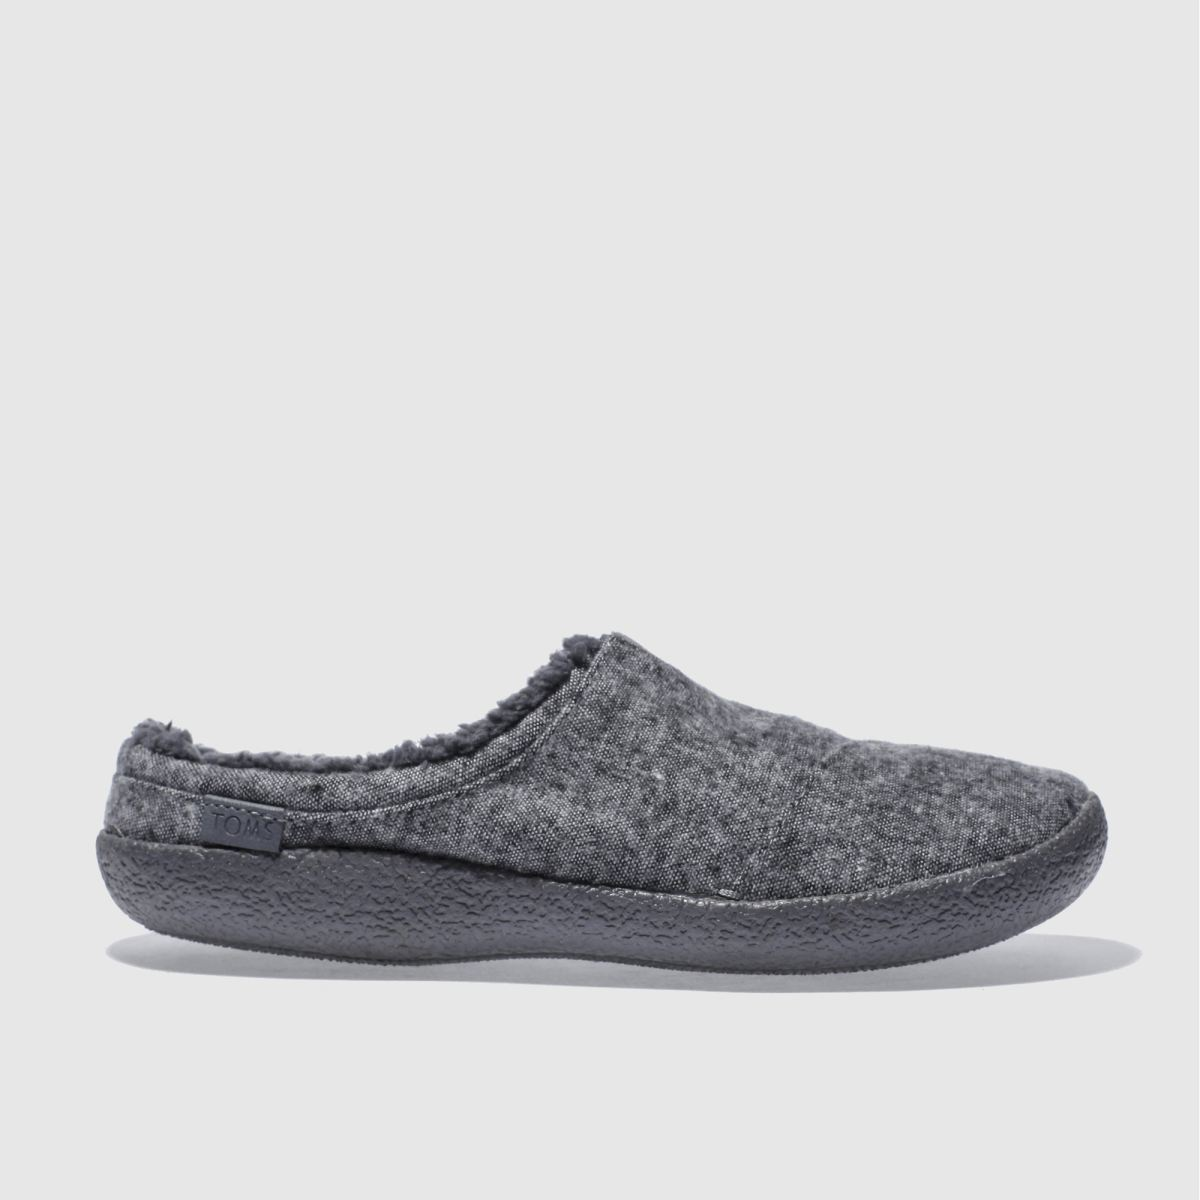 toms grey berkeley slippers